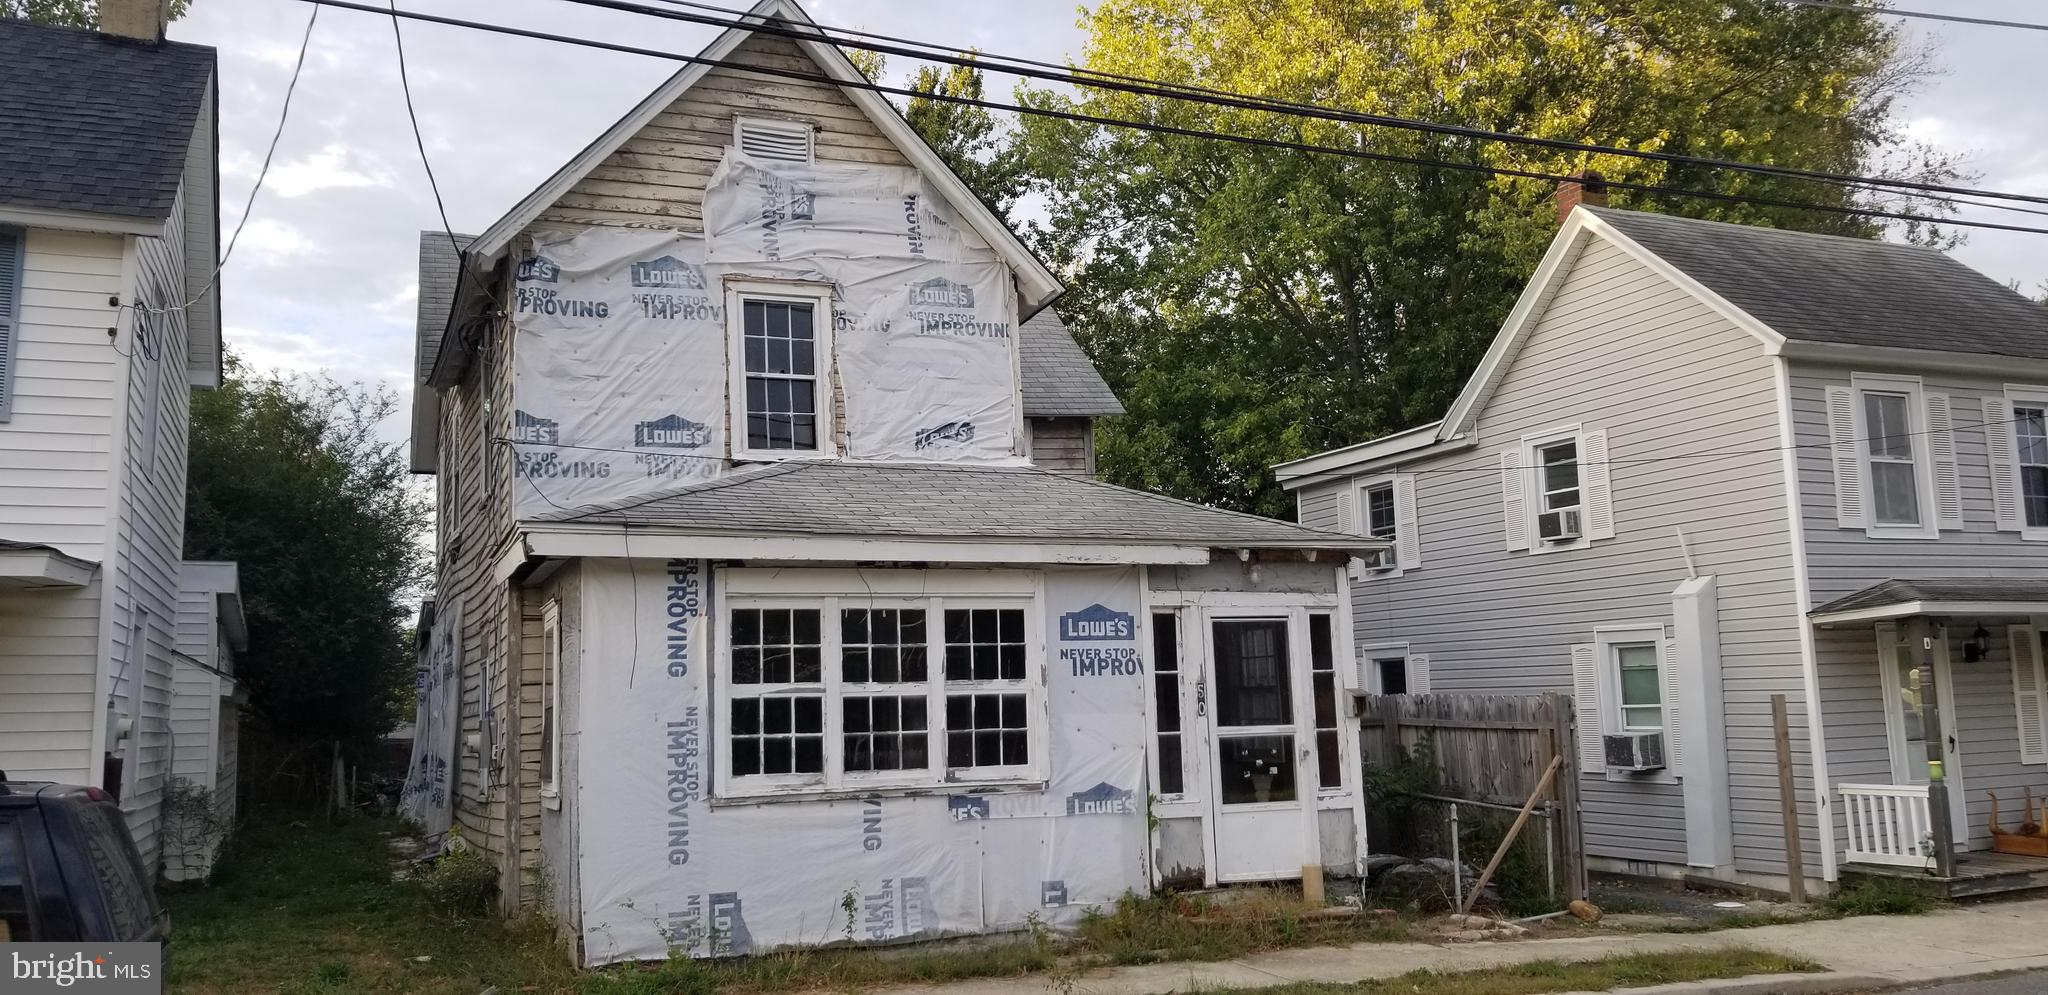 Investor Alert !  Bring an offer for this project gutted to the studs, with public water and sewer.  If you have the skills possibilities exist! CASH Only!